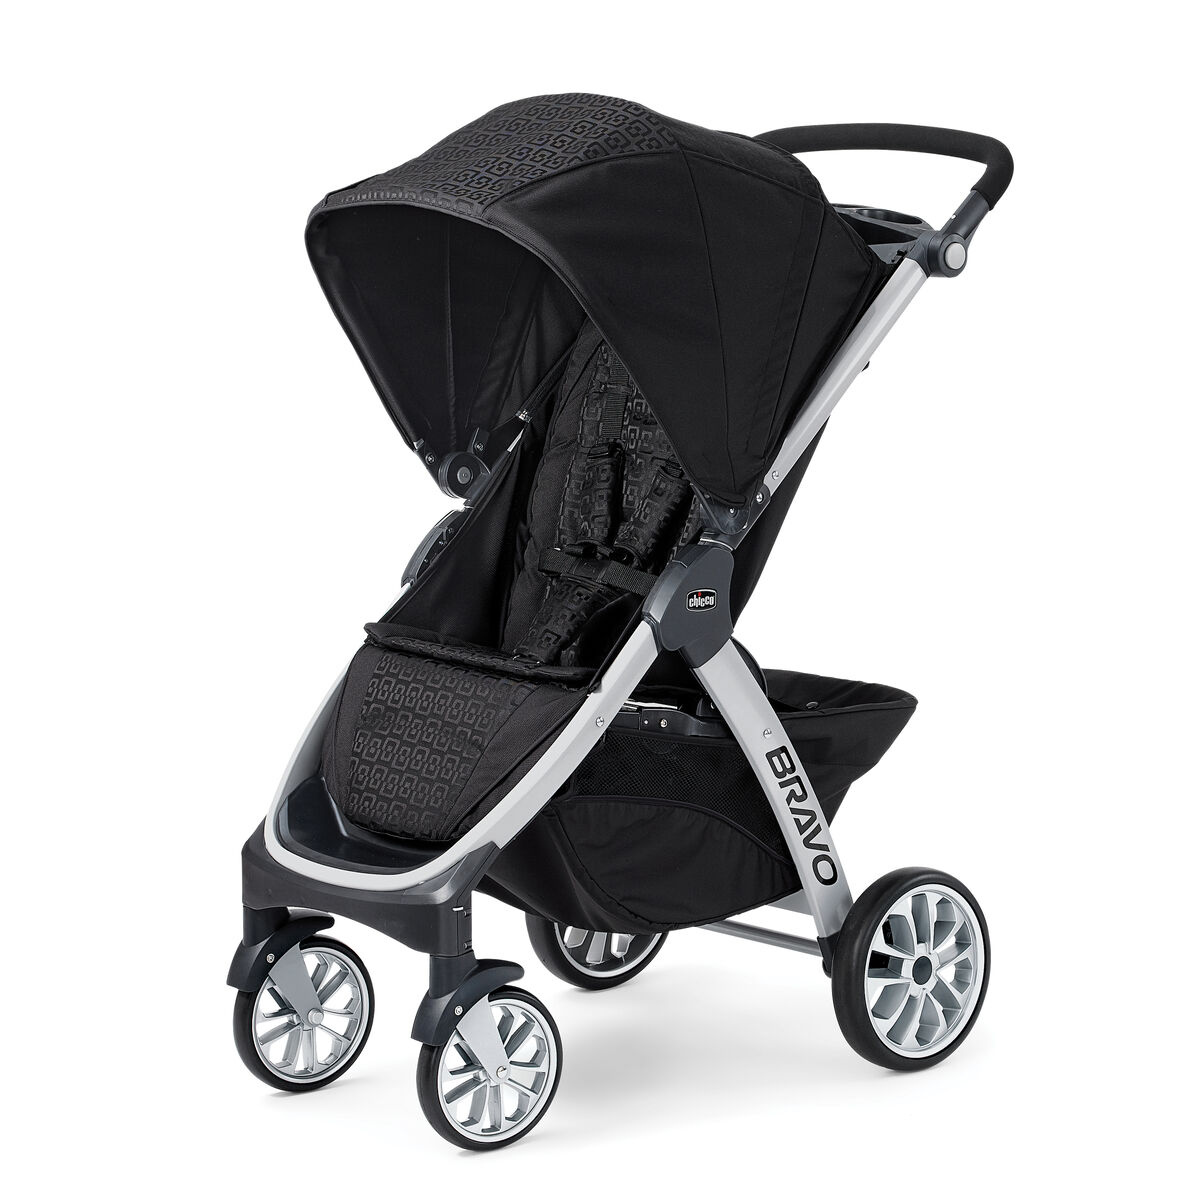 Red Chicco Car Seat >> Chicco | Chicco Bravo Trio Stroller - Ombra